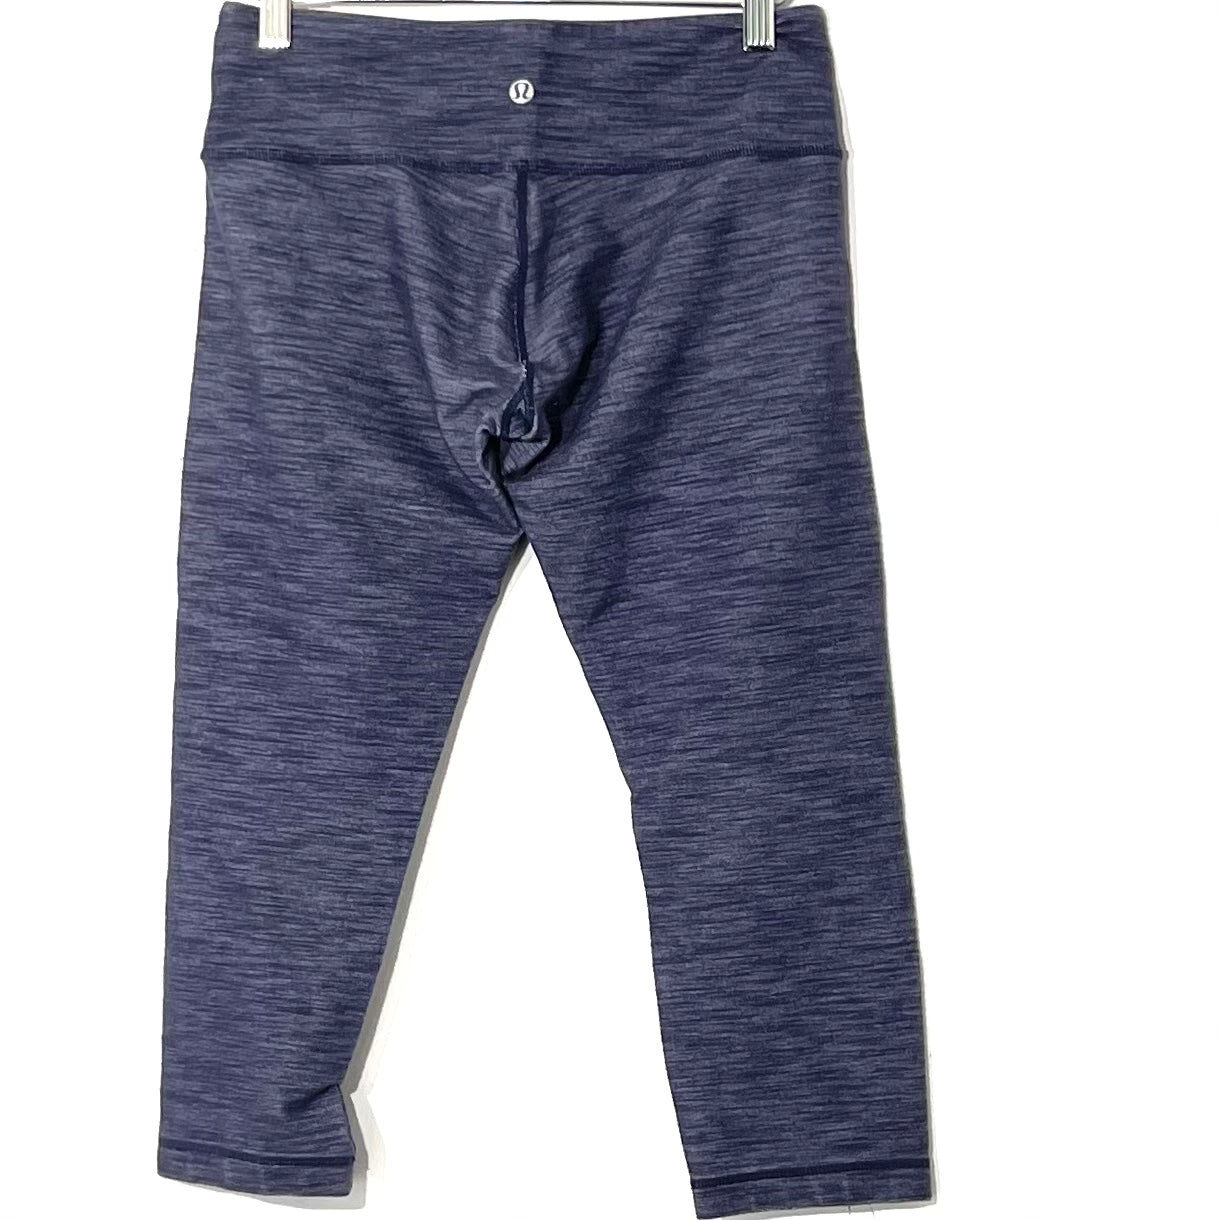 Photo #1 - BRAND: LULULEMON <BR>STYLE: ATHLETIC CAPRIS <BR>COLOR: BLUE<BR>SIZE: 6 <BR>SKU: 262-262101-2340<BR>GENTLEST FADE AND PILLING AS IS